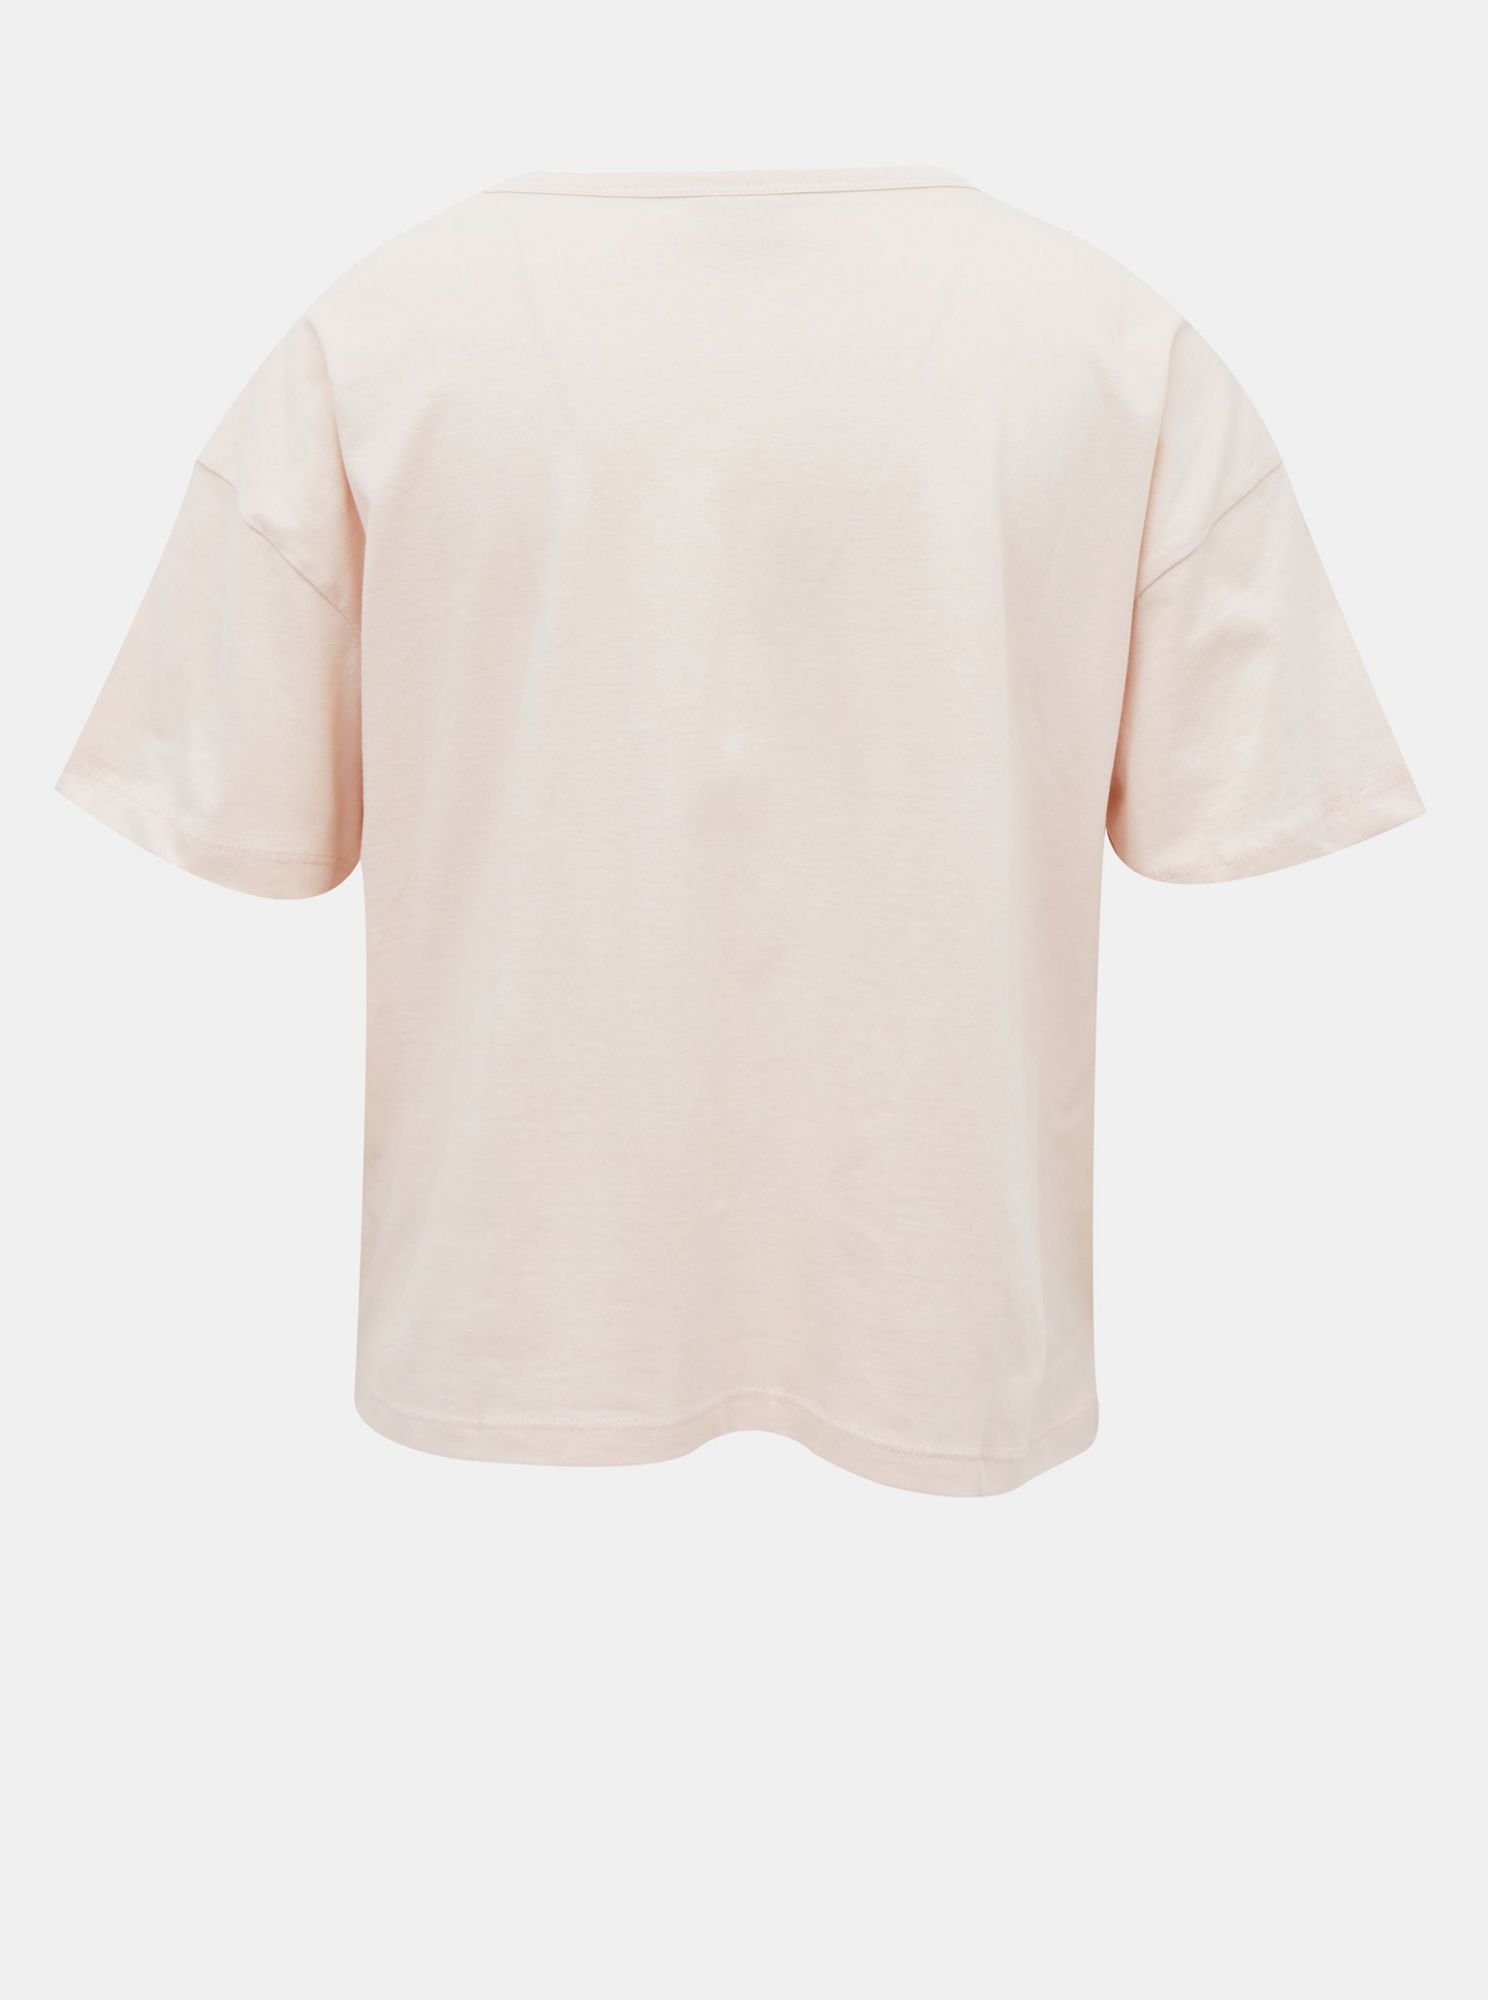 Light pink short t-shirt with Jacqueline de Yong Fang print